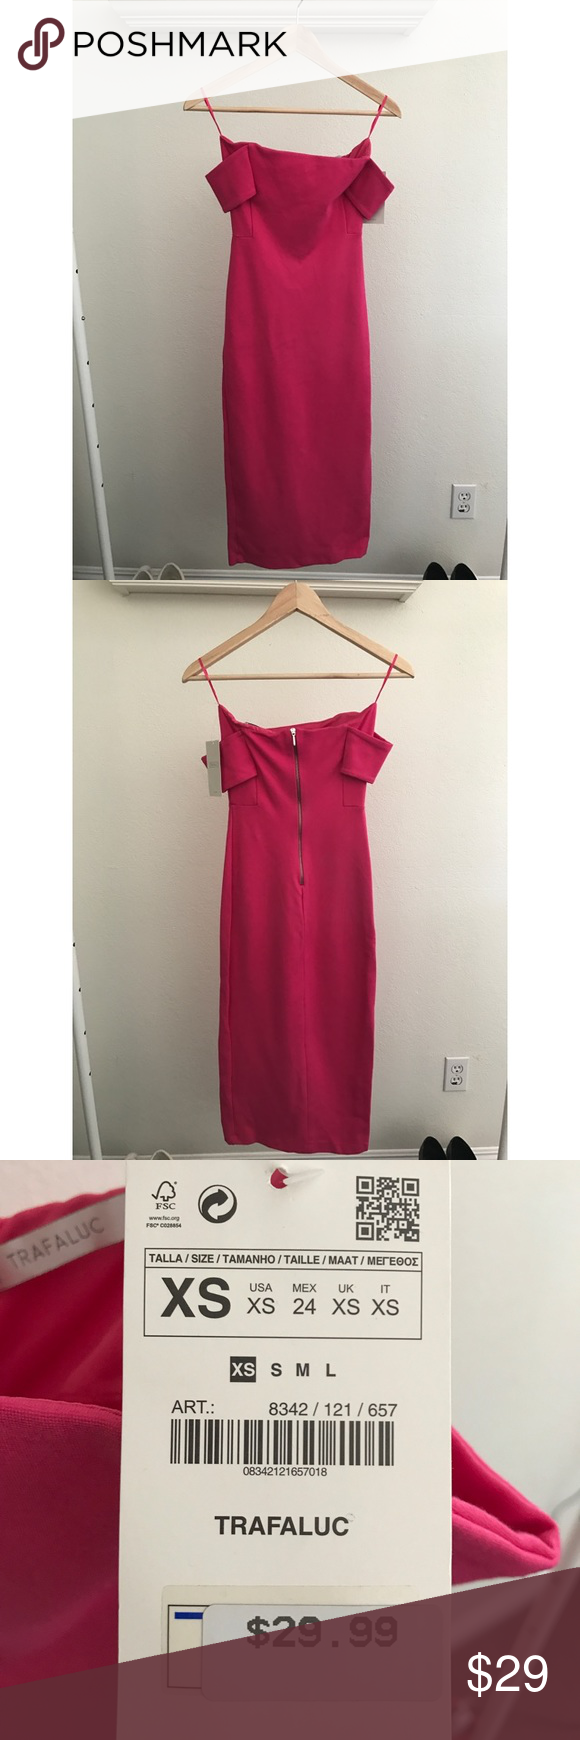 49e40b85 ZARA TRAFALUC PINK MIDI DRESS Hot pink off the shoulder bodycon dress.  Great for date night or Barbie Halloween costume 😛 !! Zara Dresses Midi